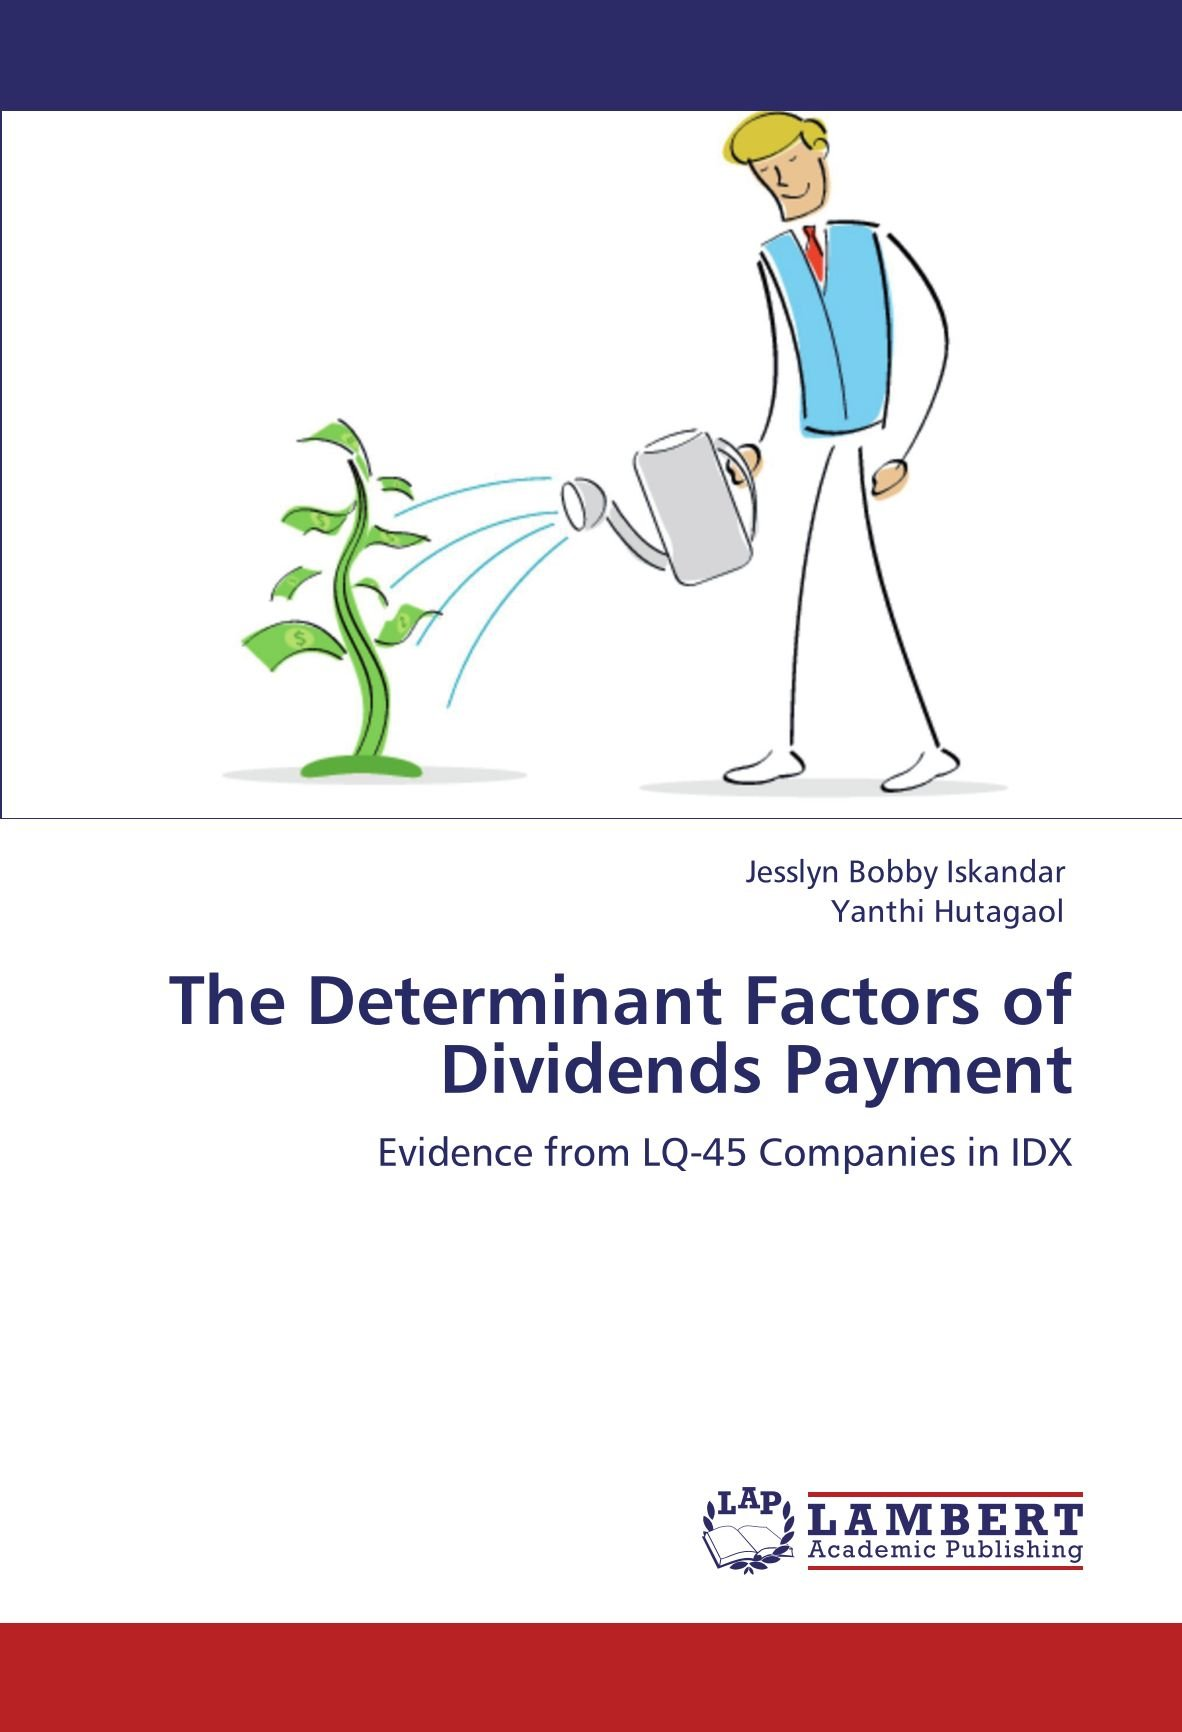 The Determinant Factors of Dividends Payment: Evidence from LQ-45 Companies in IDX PDF